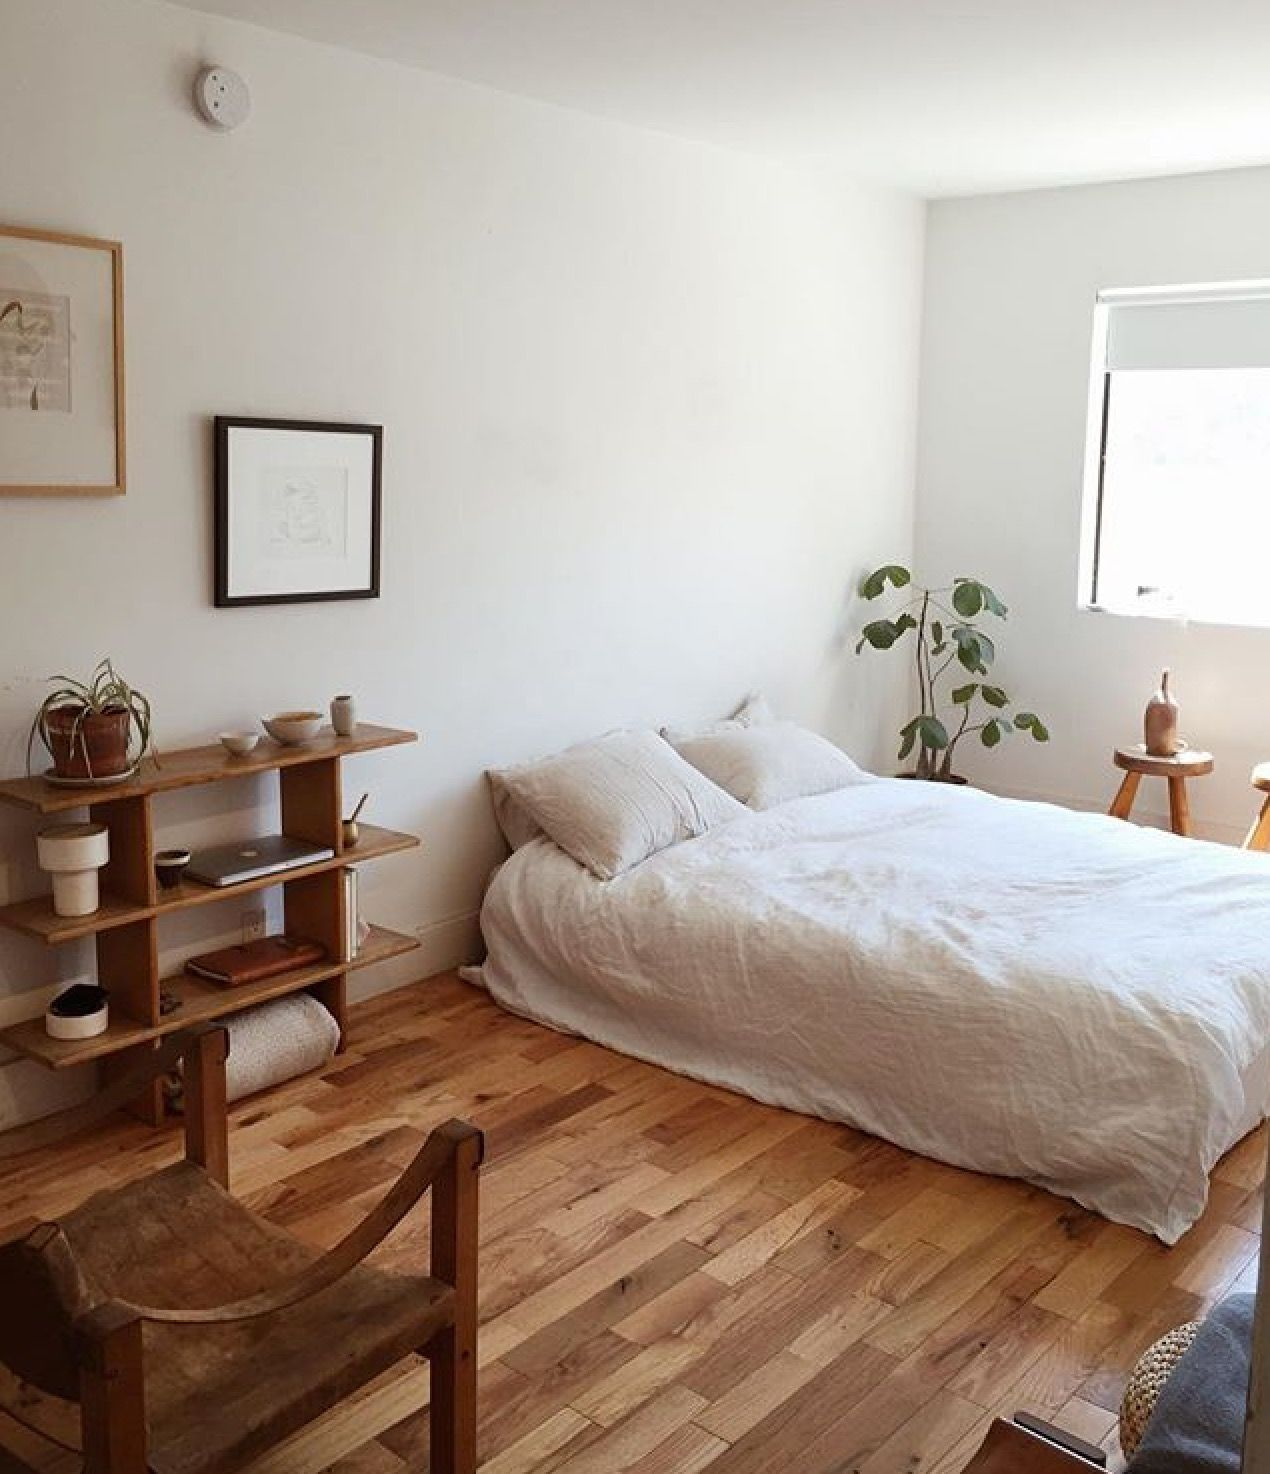 Simple Home Interior Design: Pretty Simple Room, White And Wood